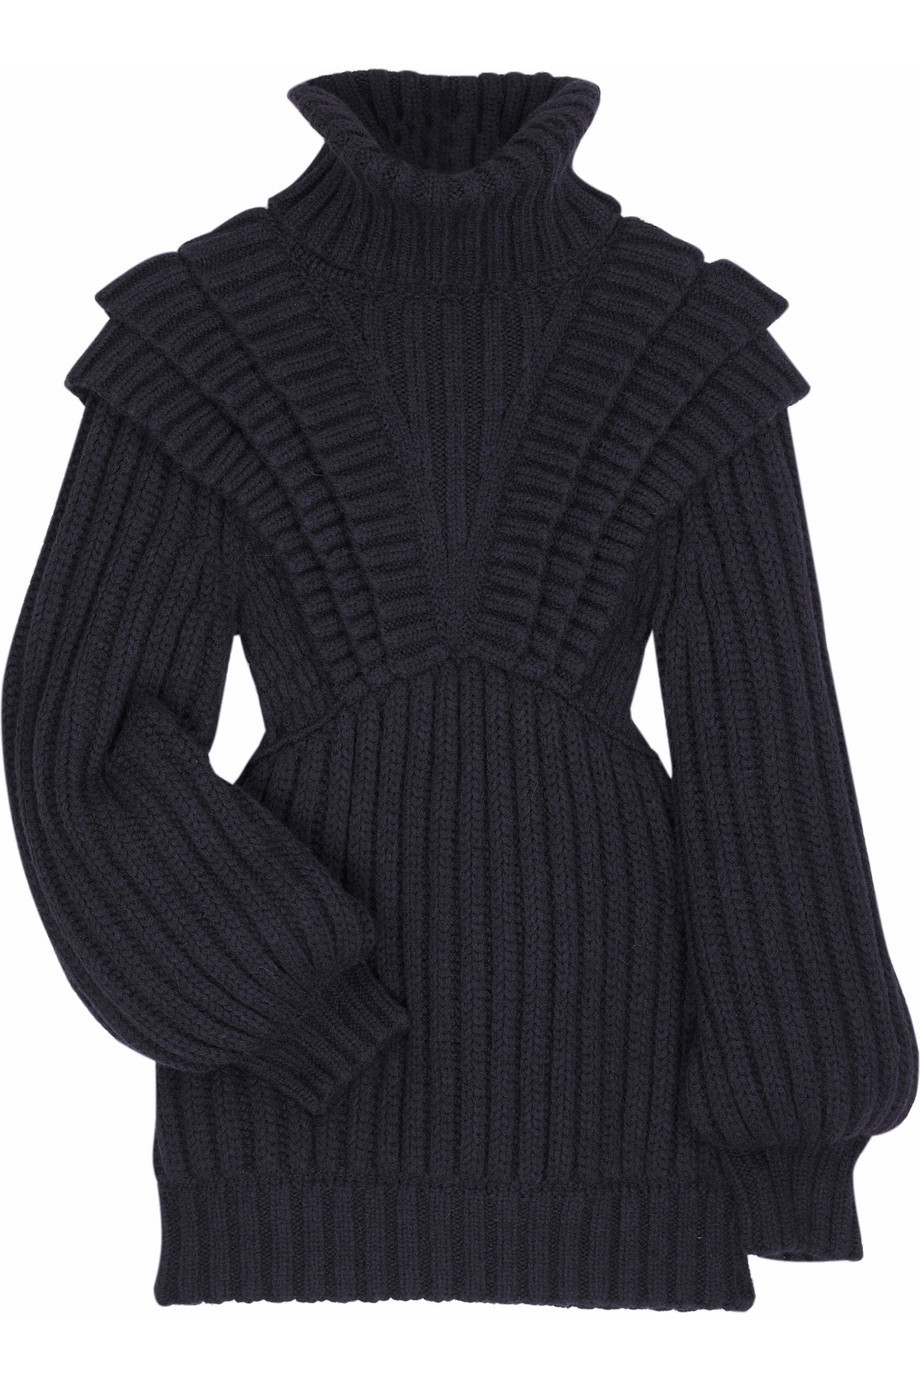 Fendi Heavy knit sweater | NET-A-PORTER.COM from net-a-porter.com